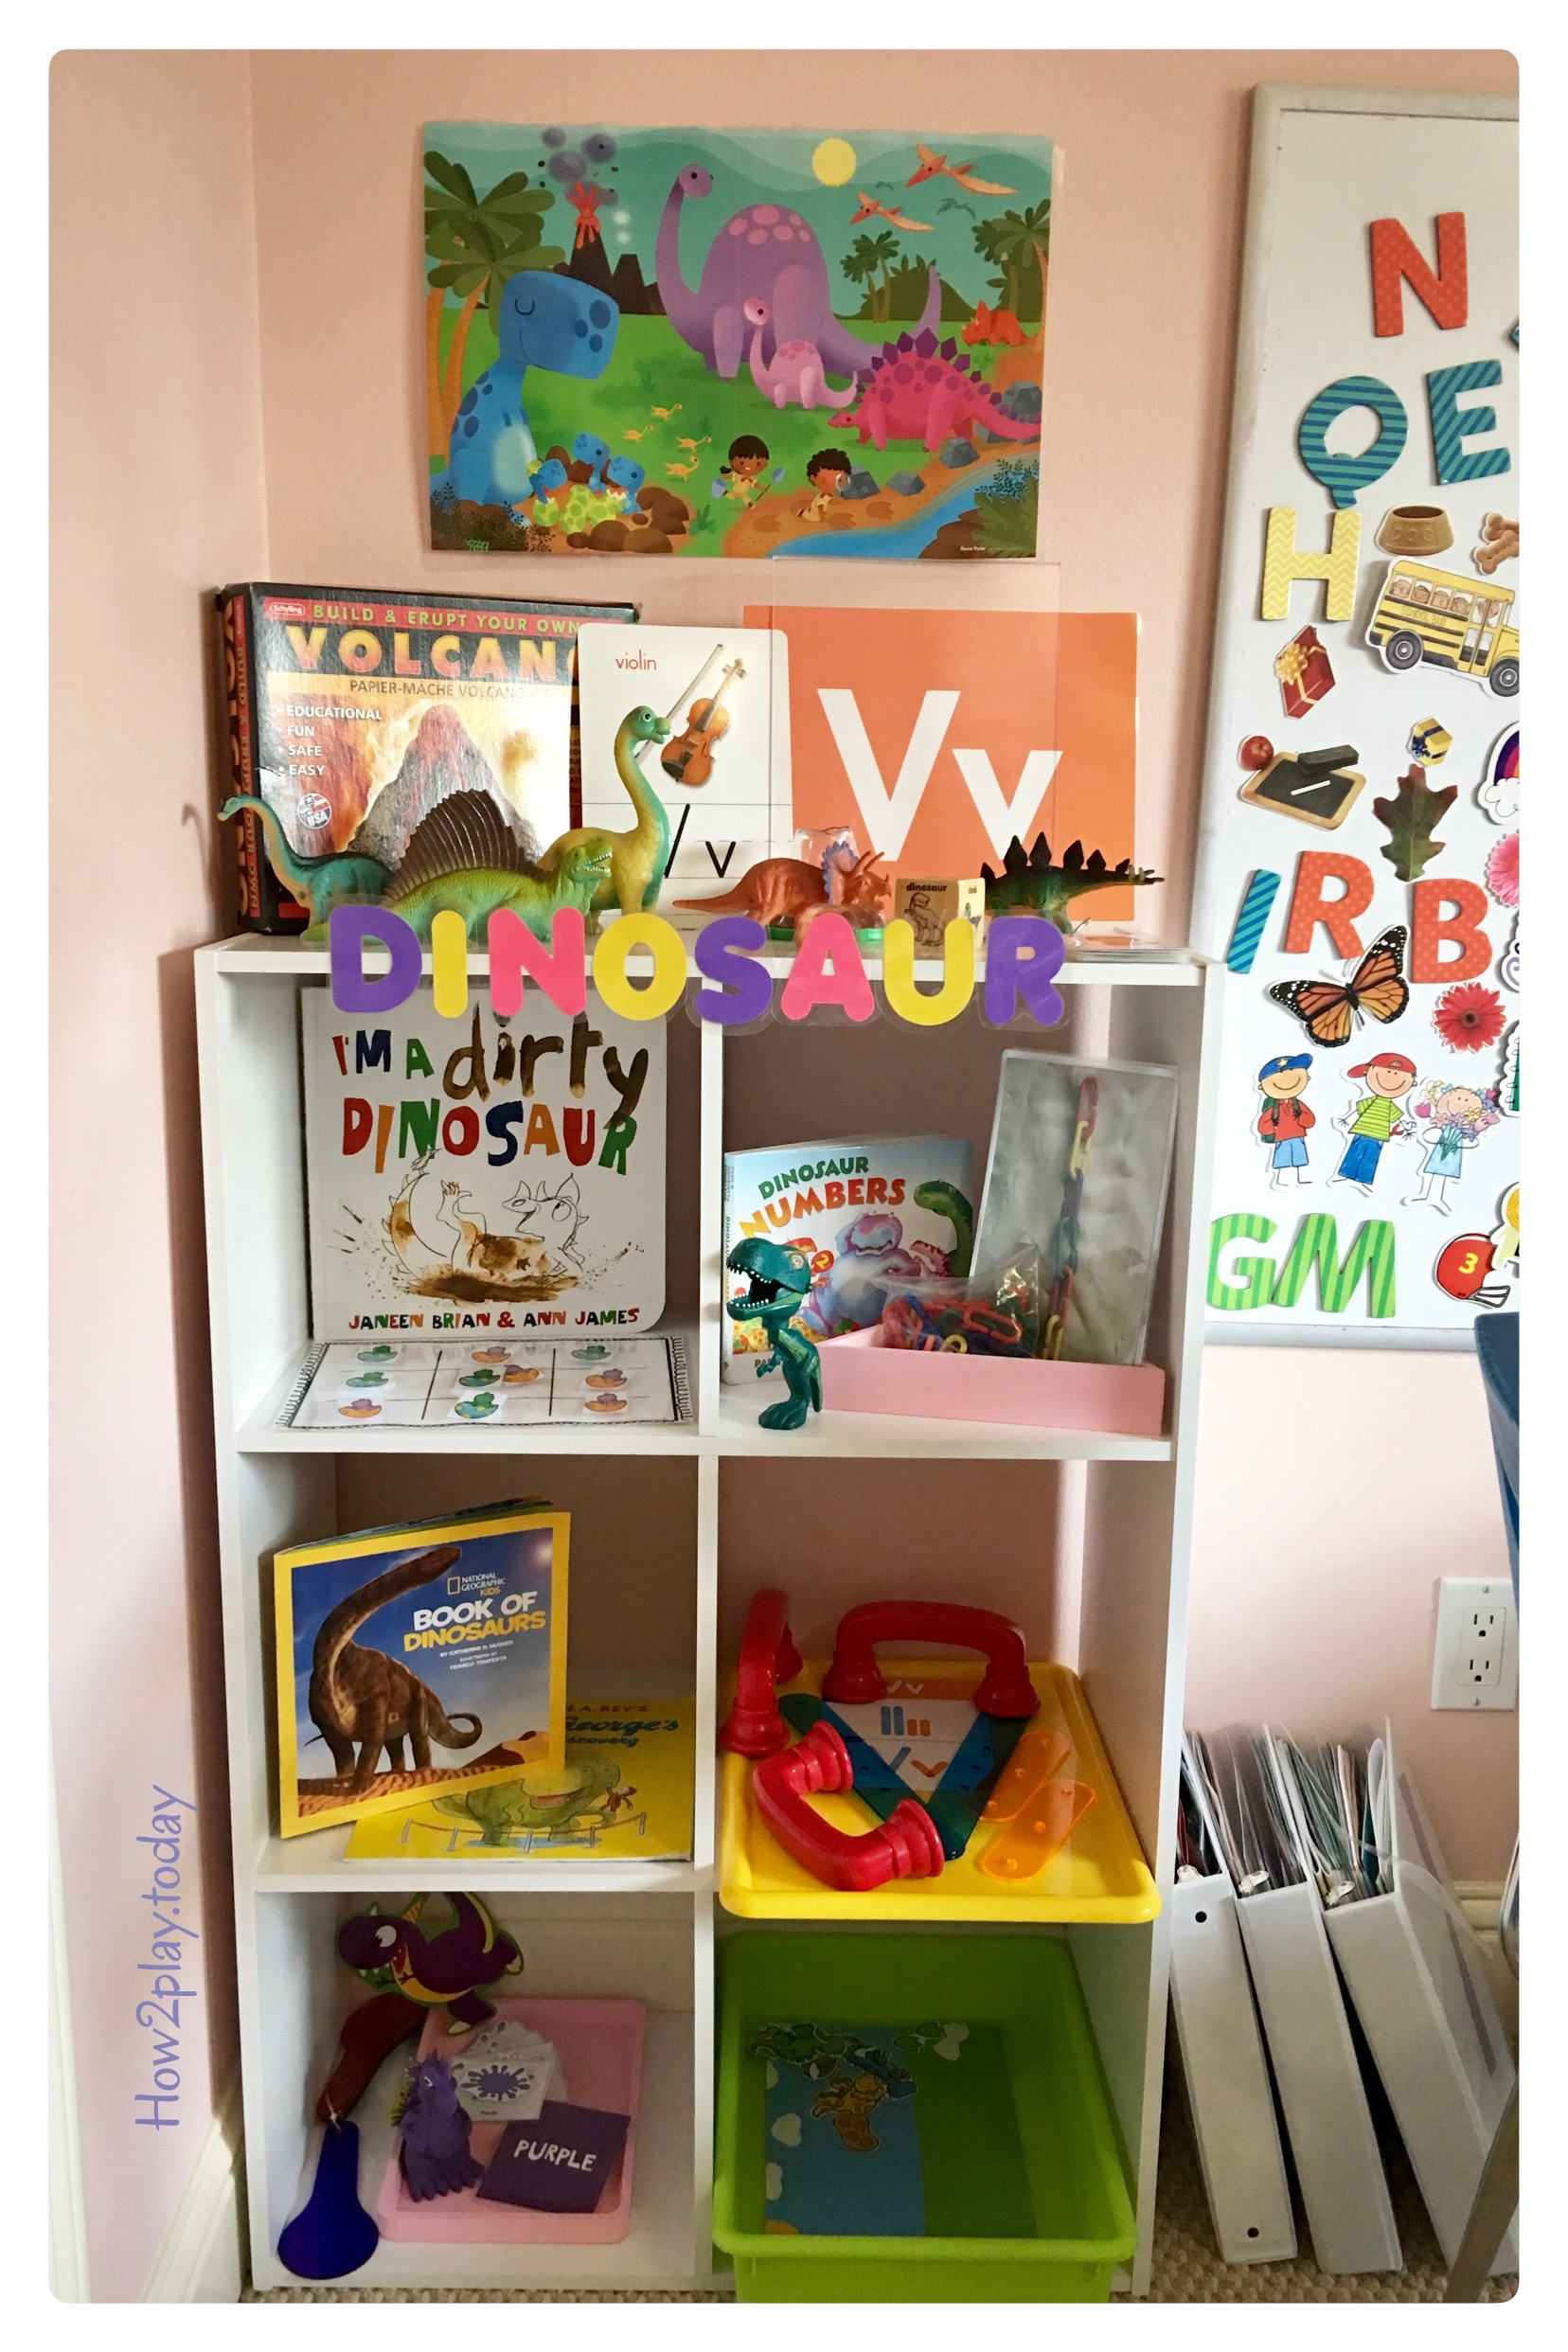 Dinosaur Literacy Center: V for Volcano, Dinosaurs, games to teach letter recognition, sorting, counting all perfect for preschool, pre-k and kindergarteners.